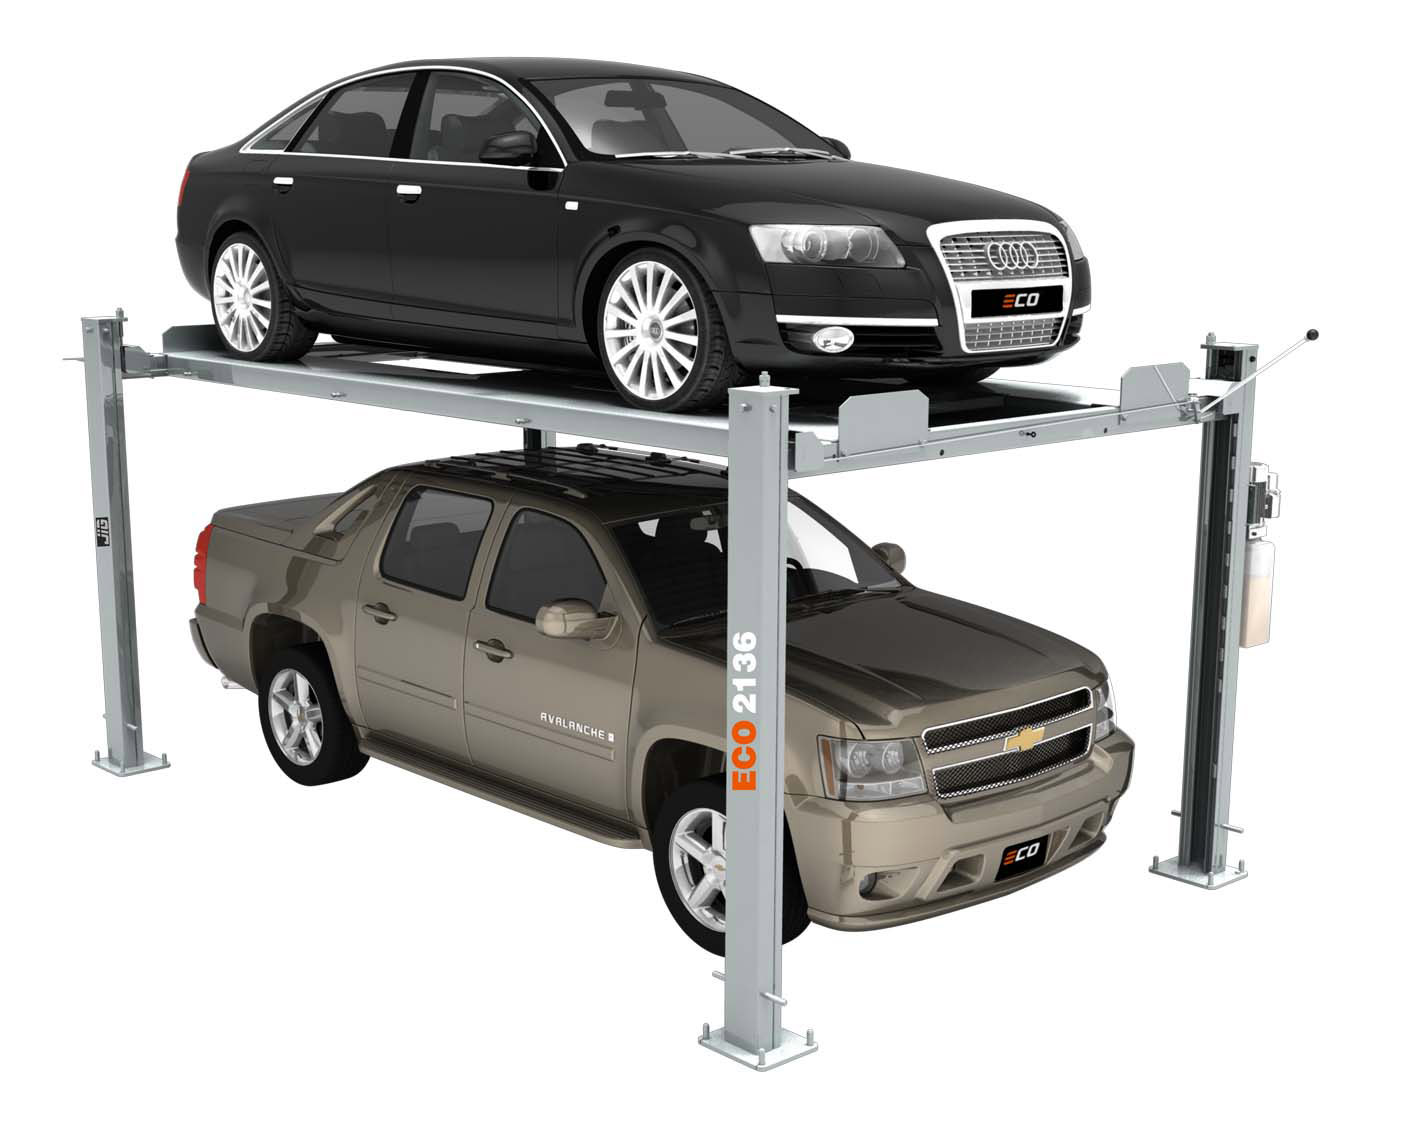 four post vehicle service lift